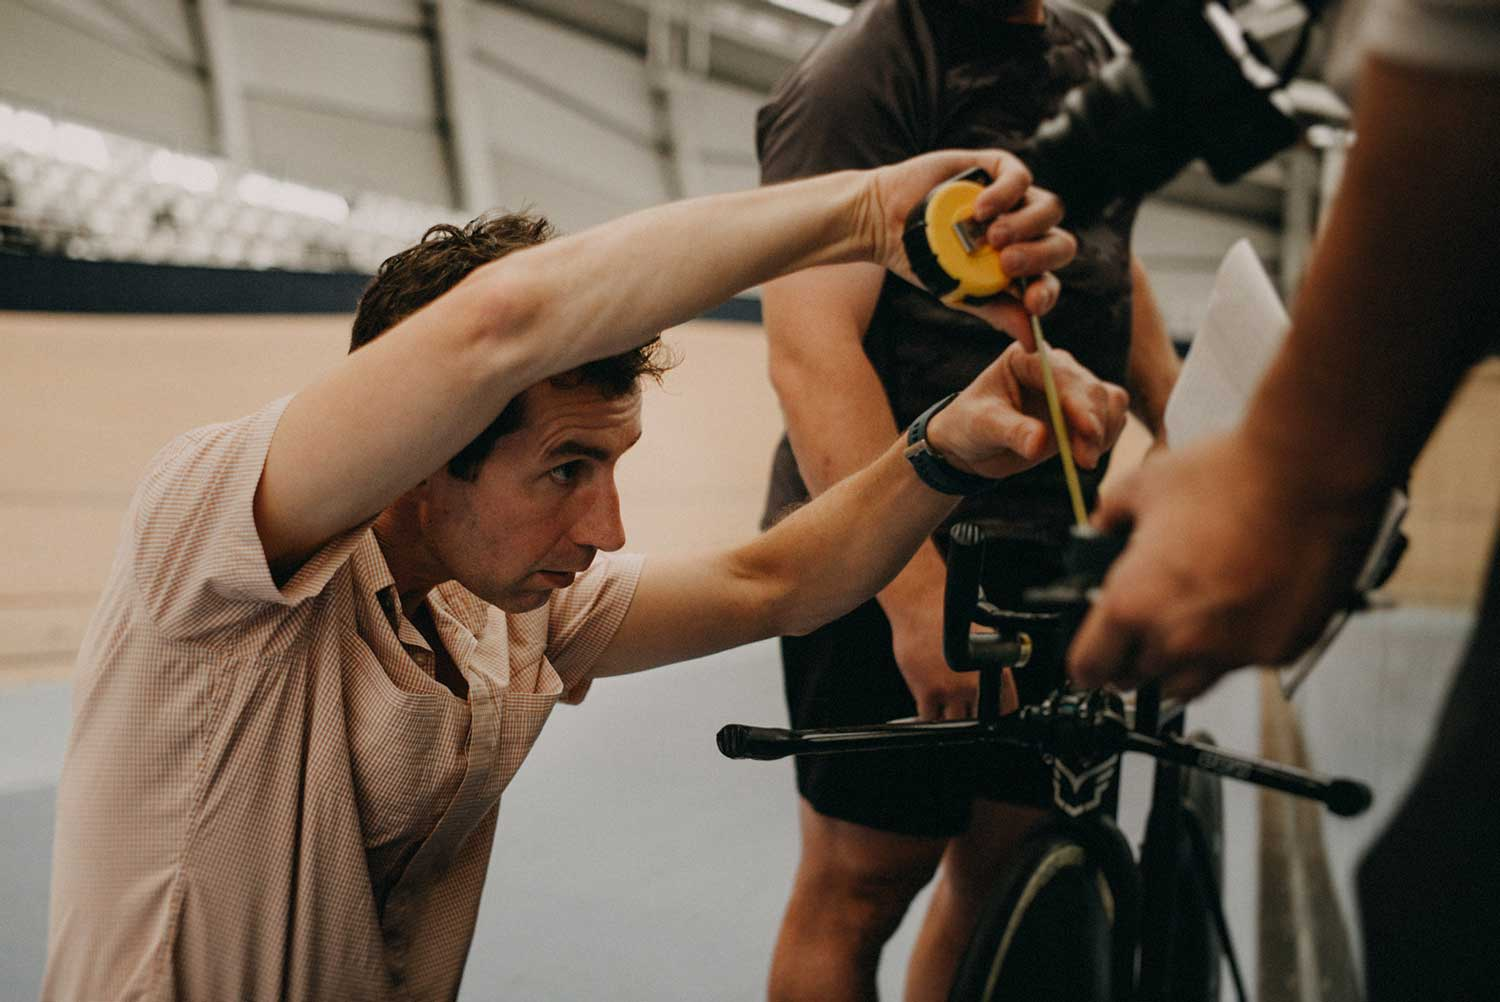 Cycling biomechanist checks bike fit for accuracy during rtaining session at velodrome